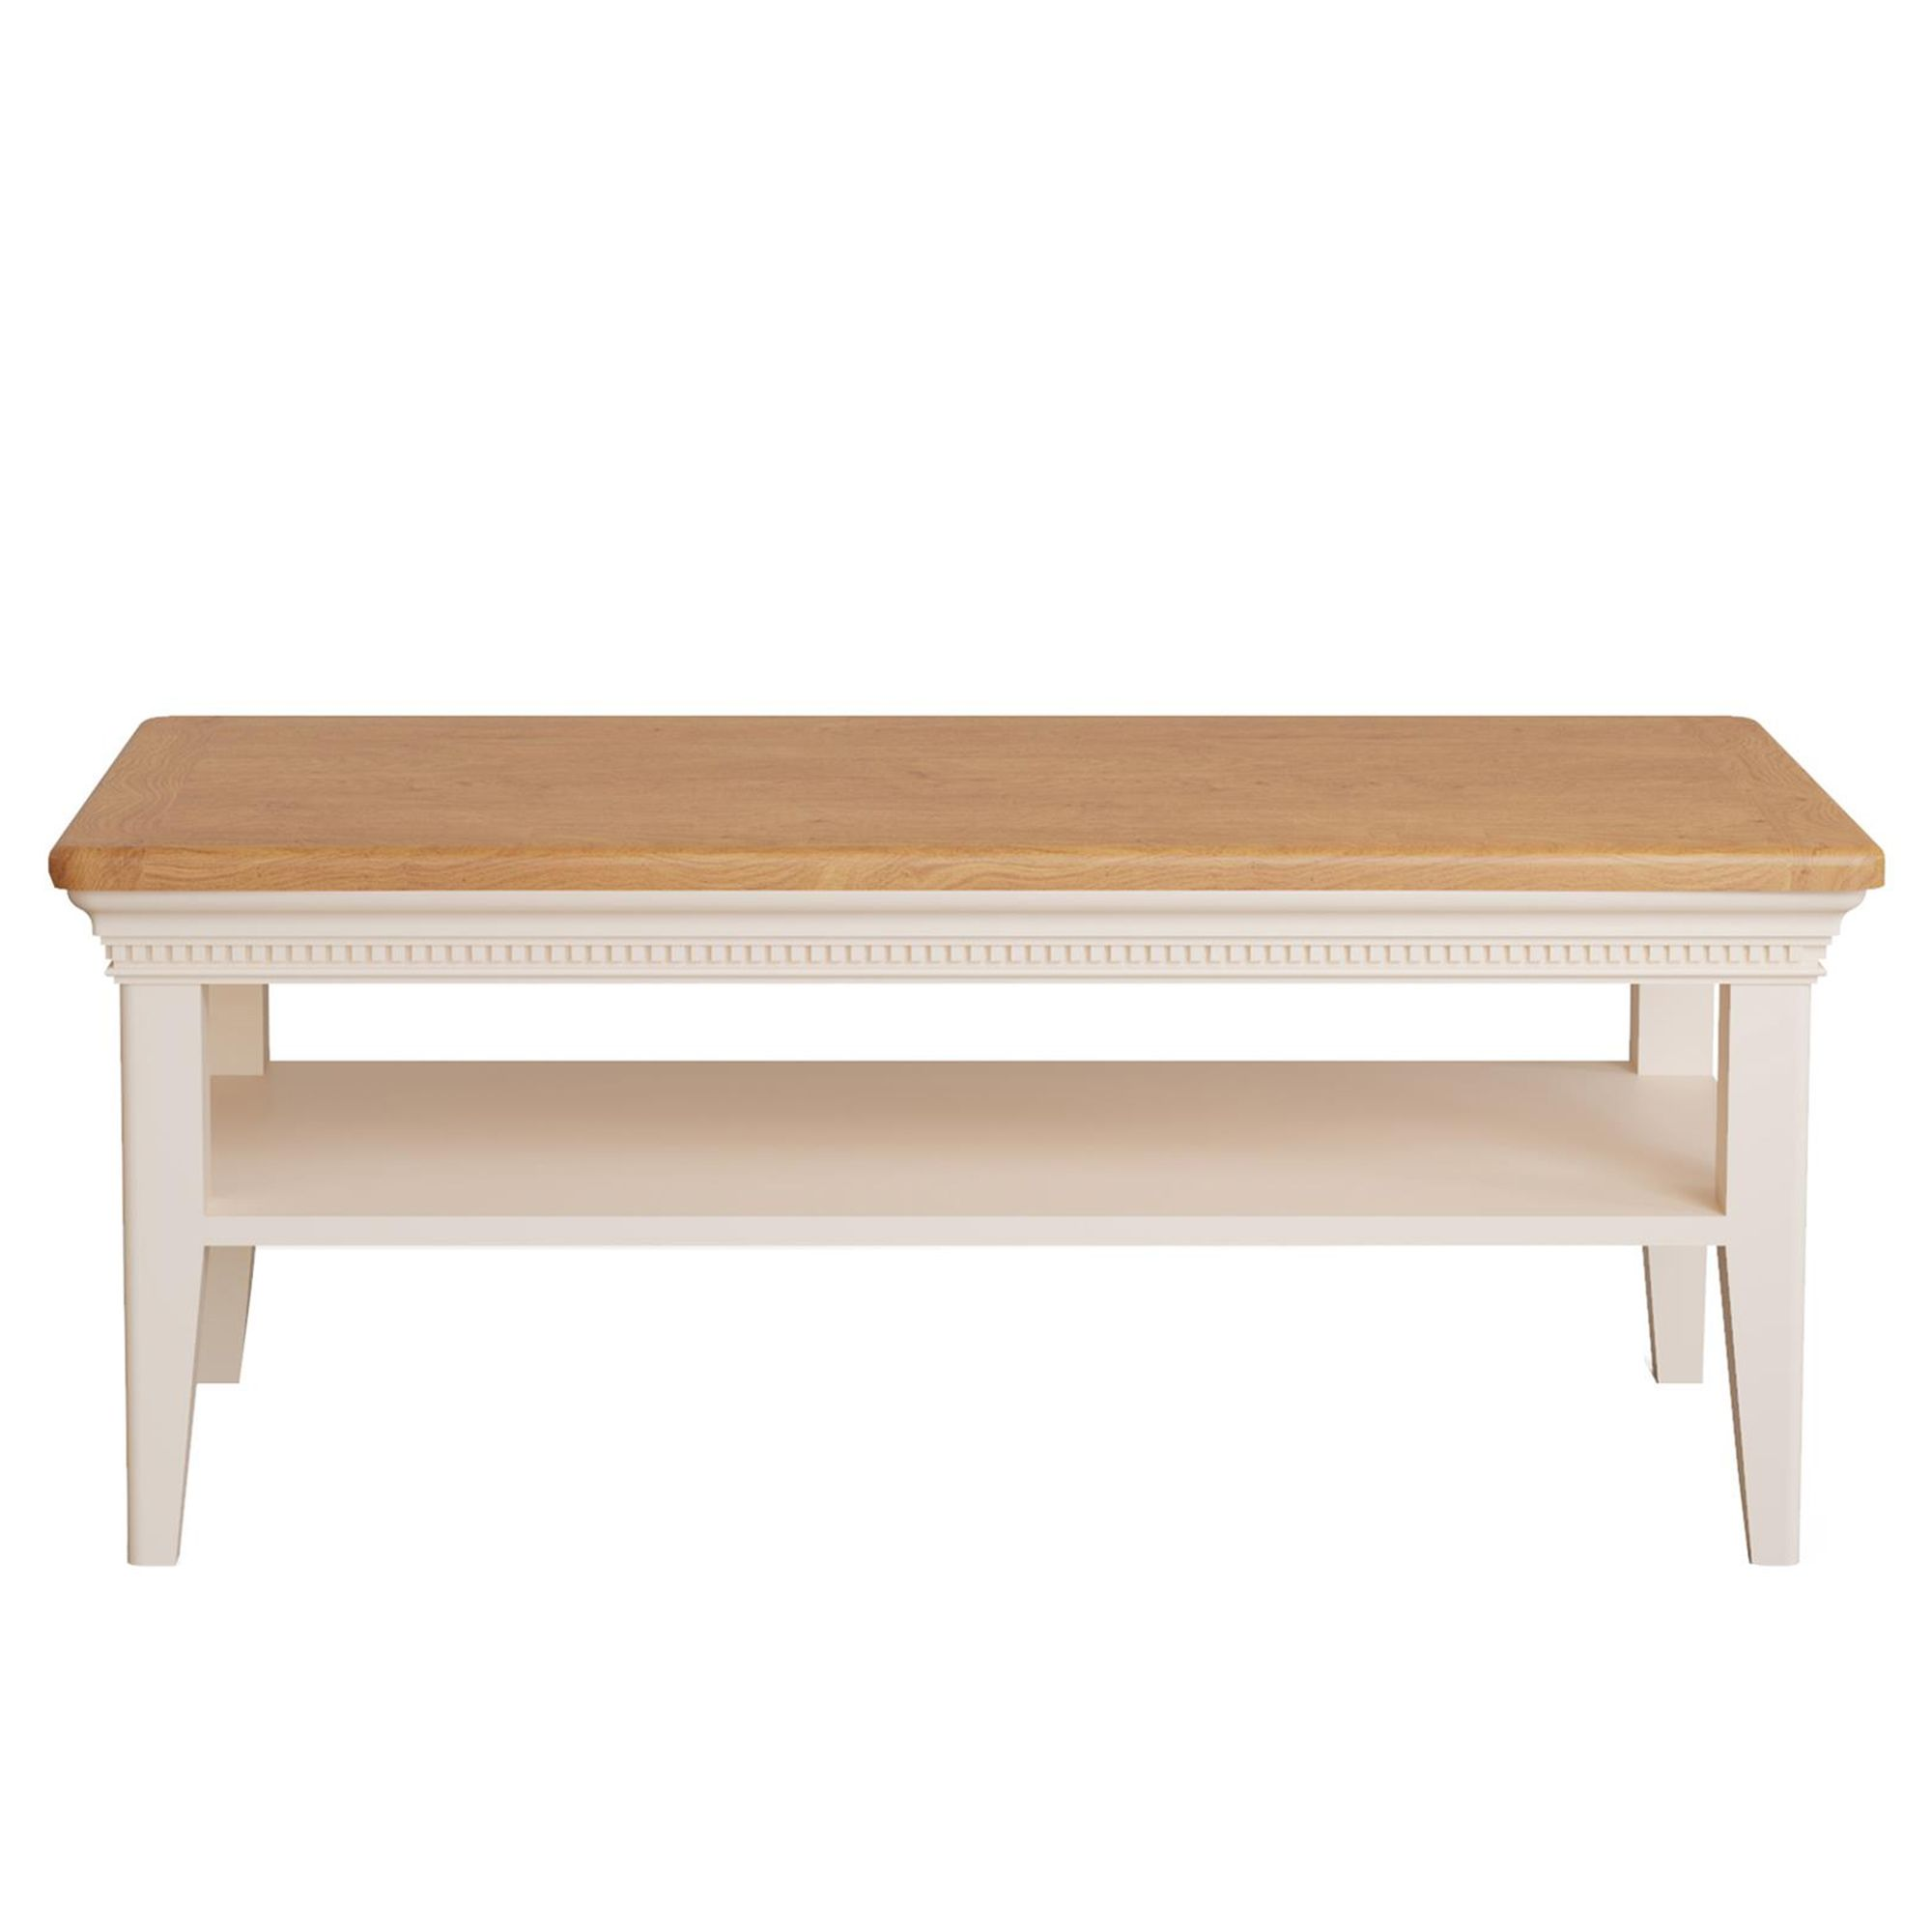 bellingham coffee table painted off white with oak top